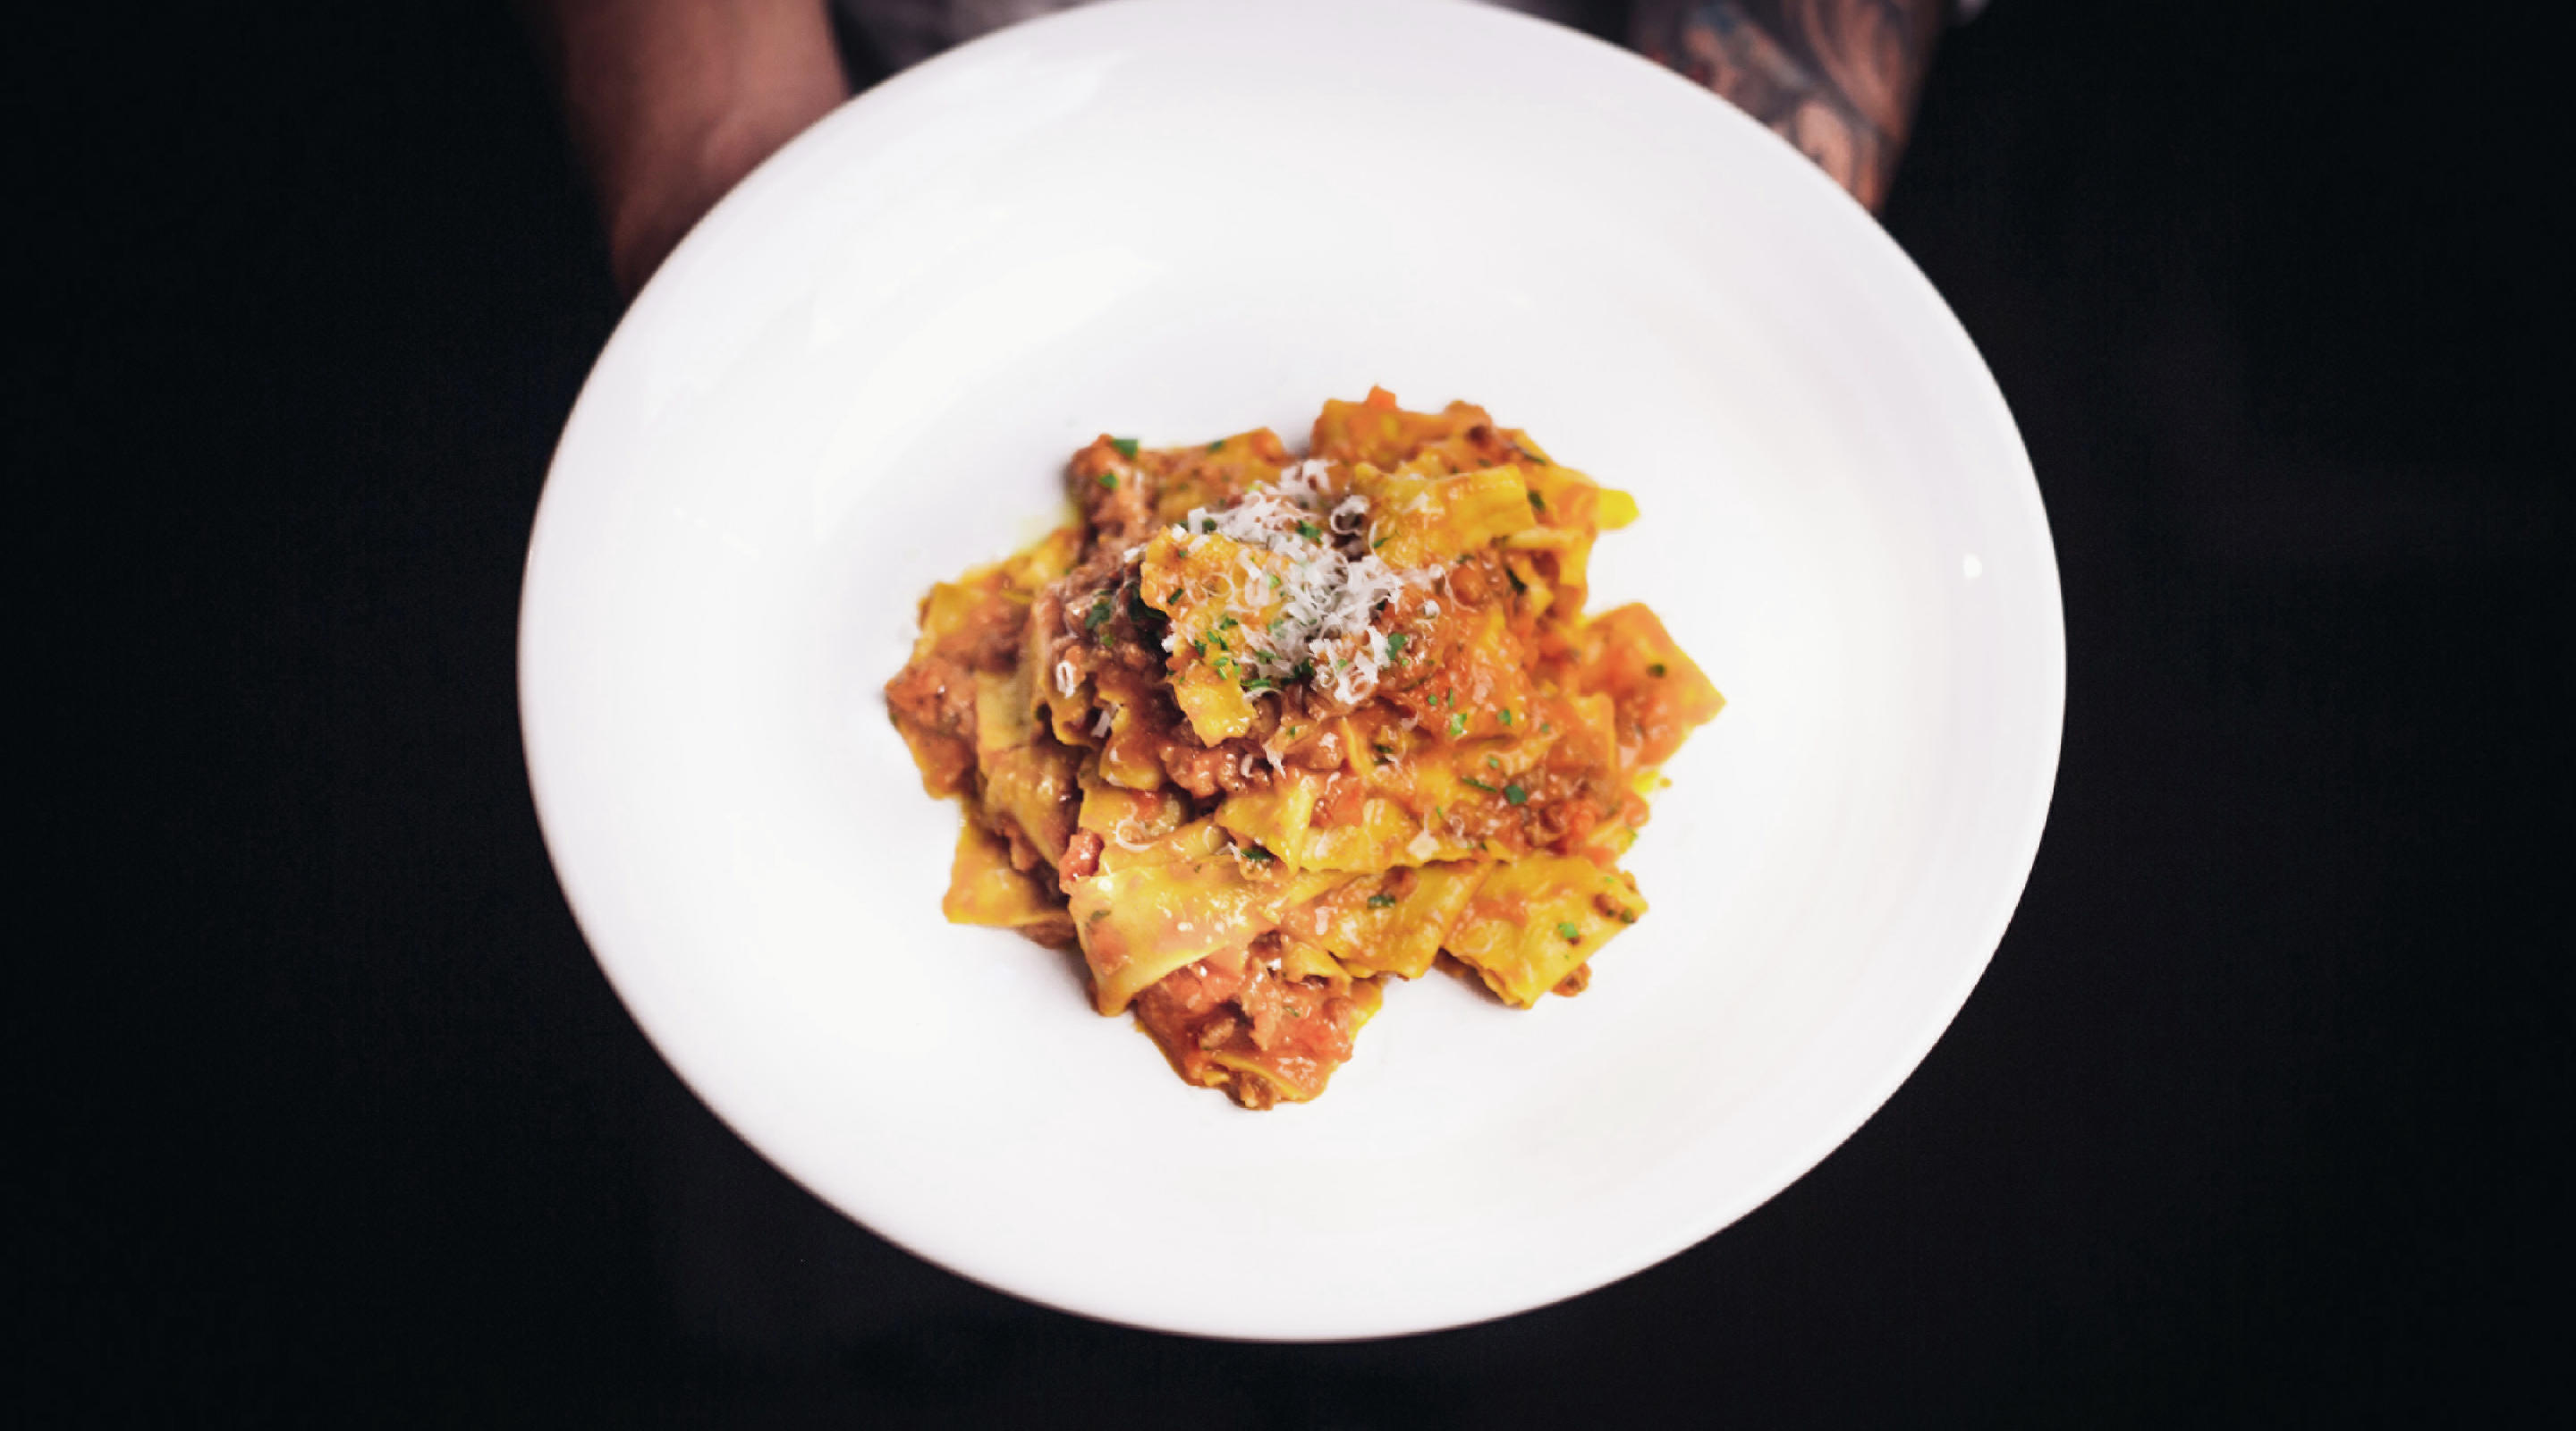 Lupo, located at Mandalay Bay, shows off their Parpadelle Bolognese.